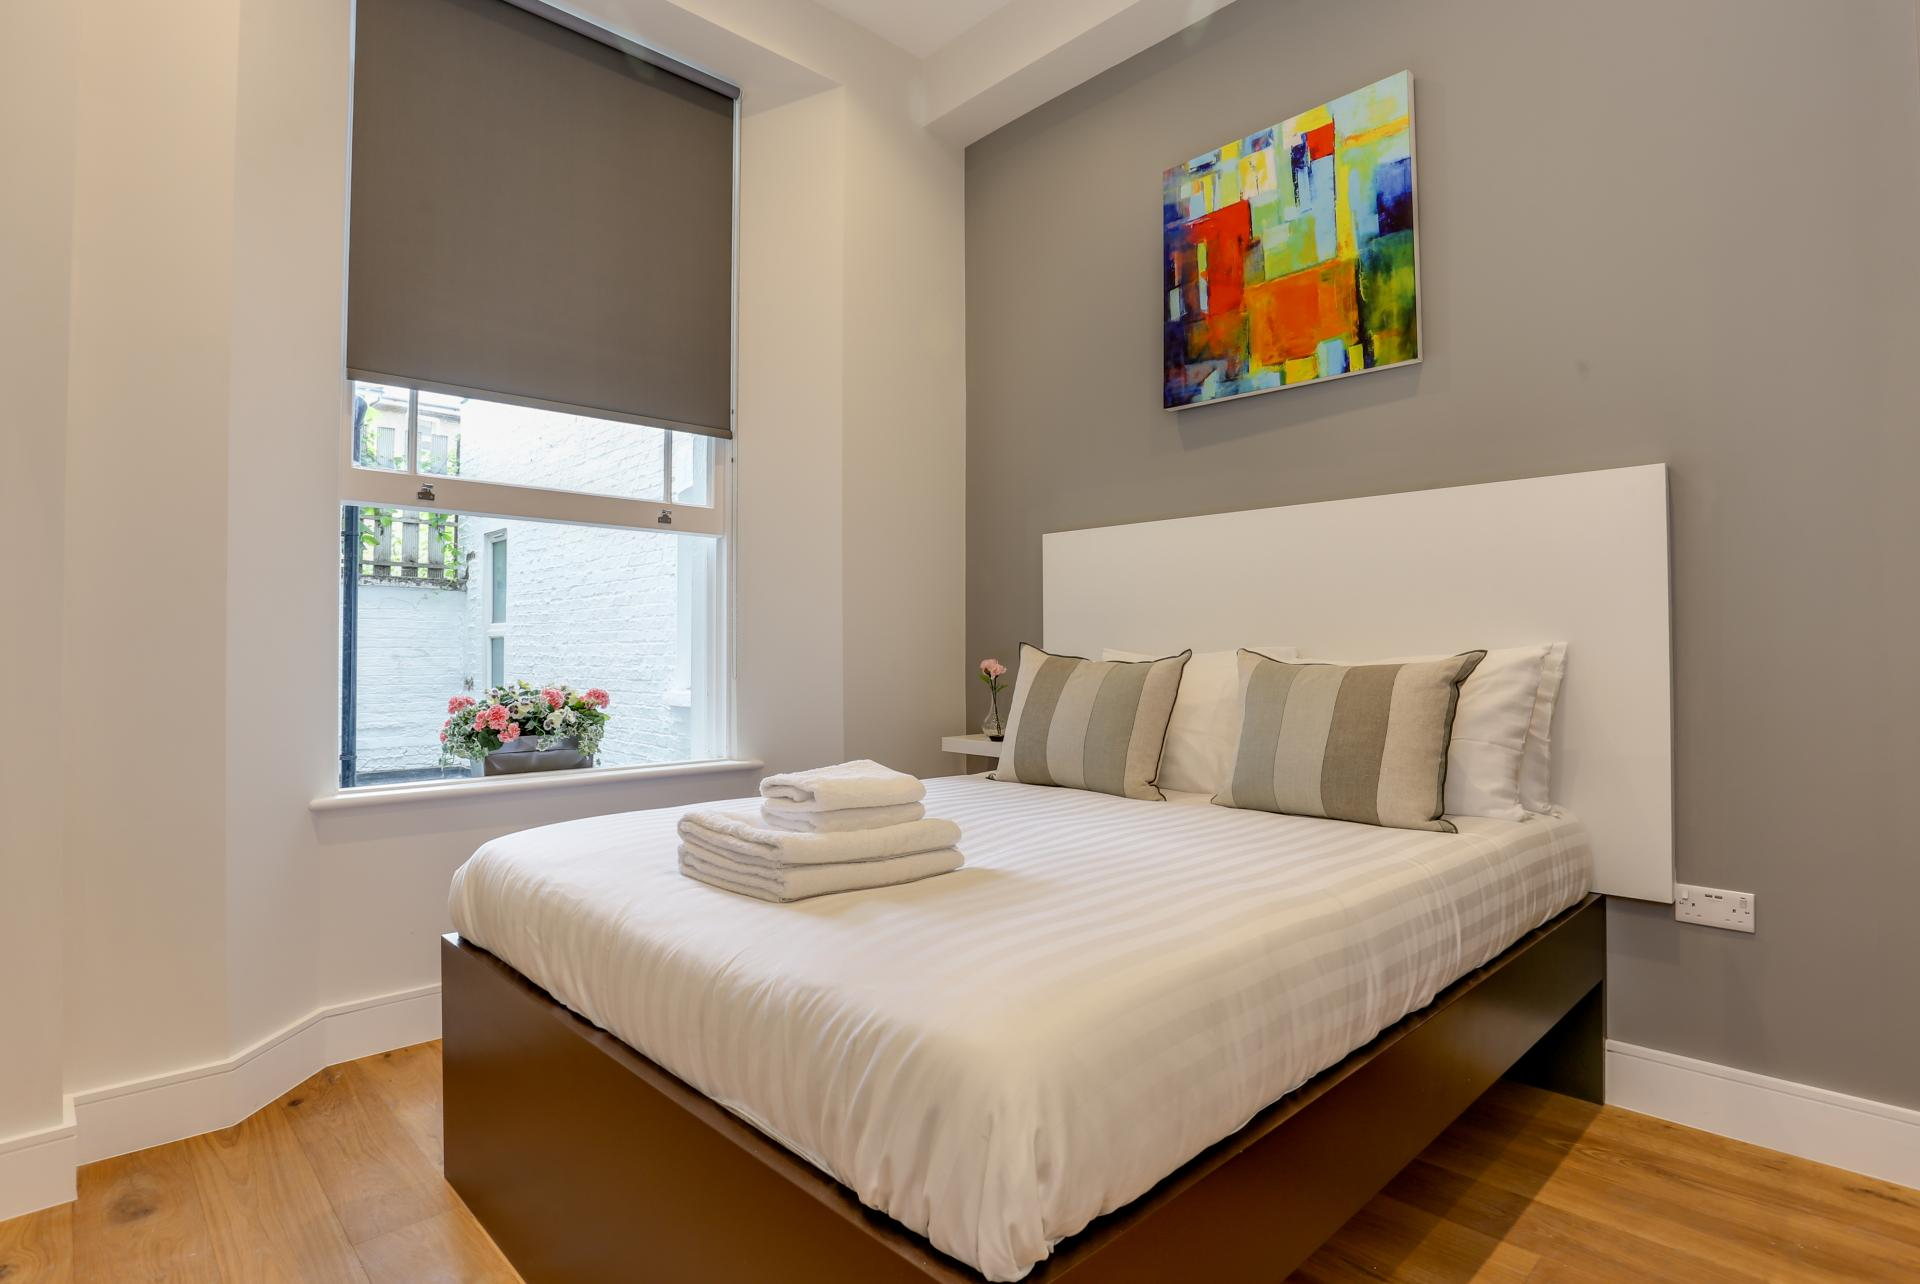 Bed at Queensborough Terrace, Bayswater, London - Citybase Apartments